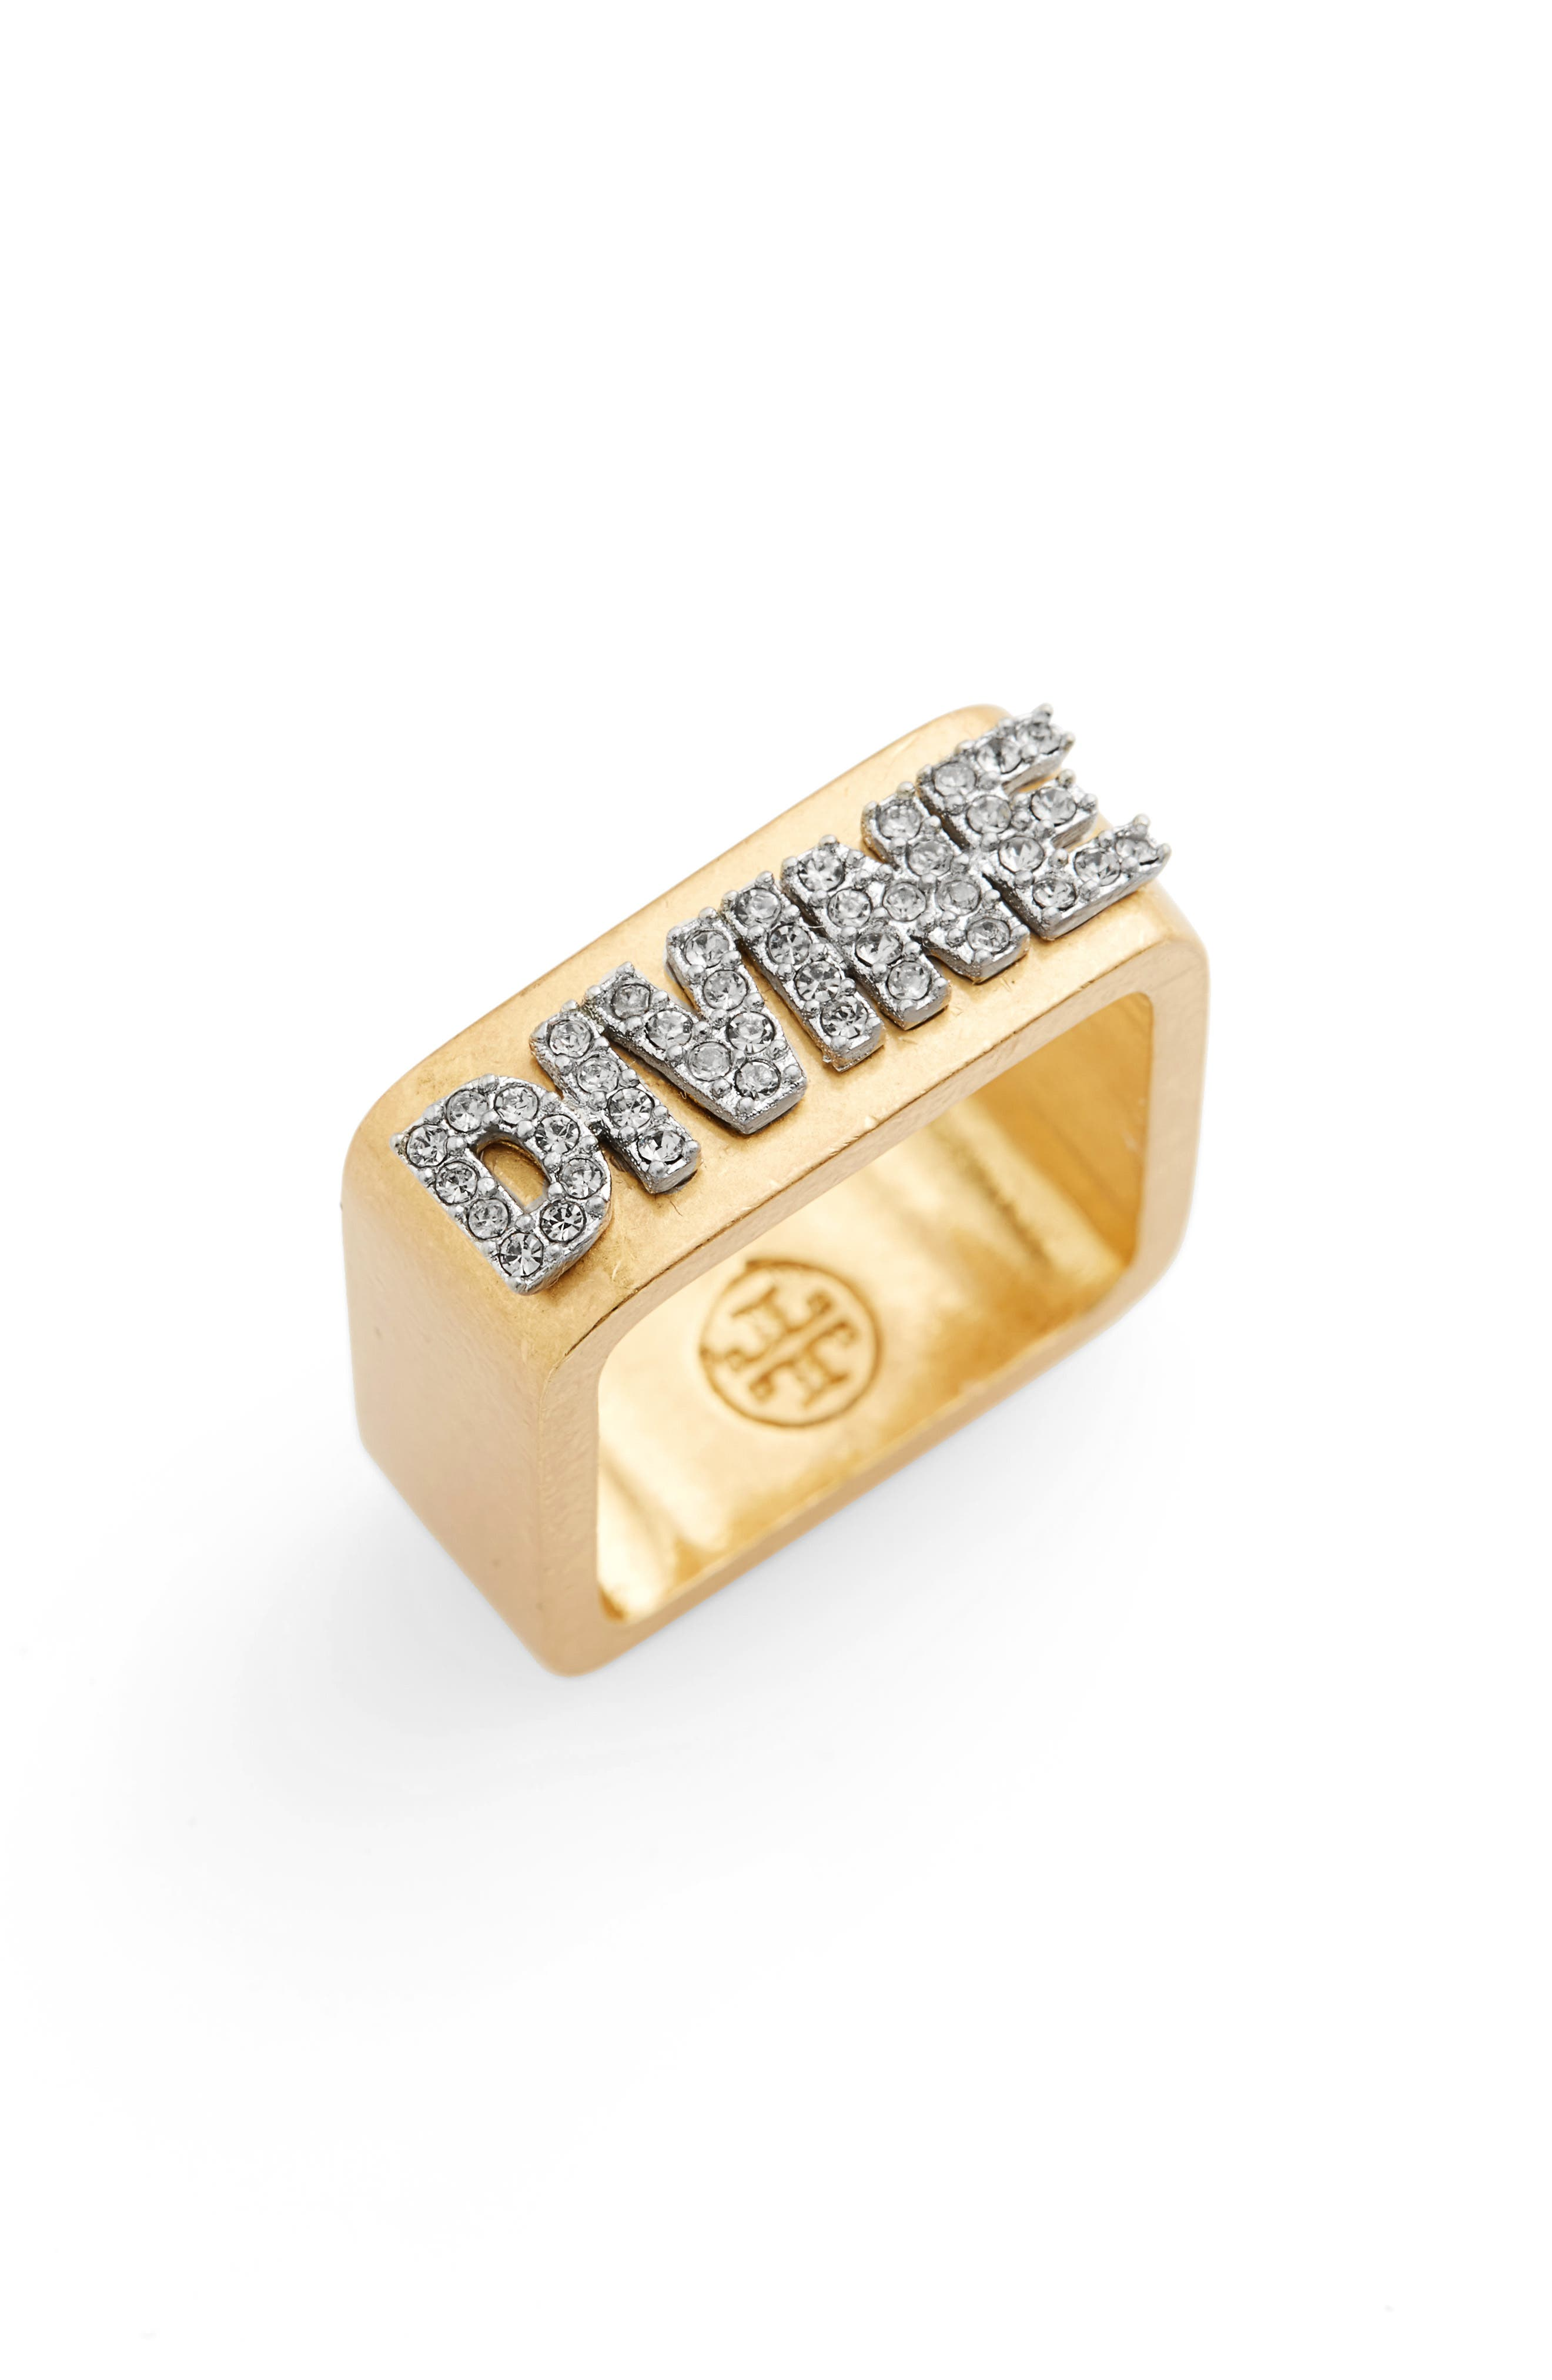 Tory Burch Divine Message Ring